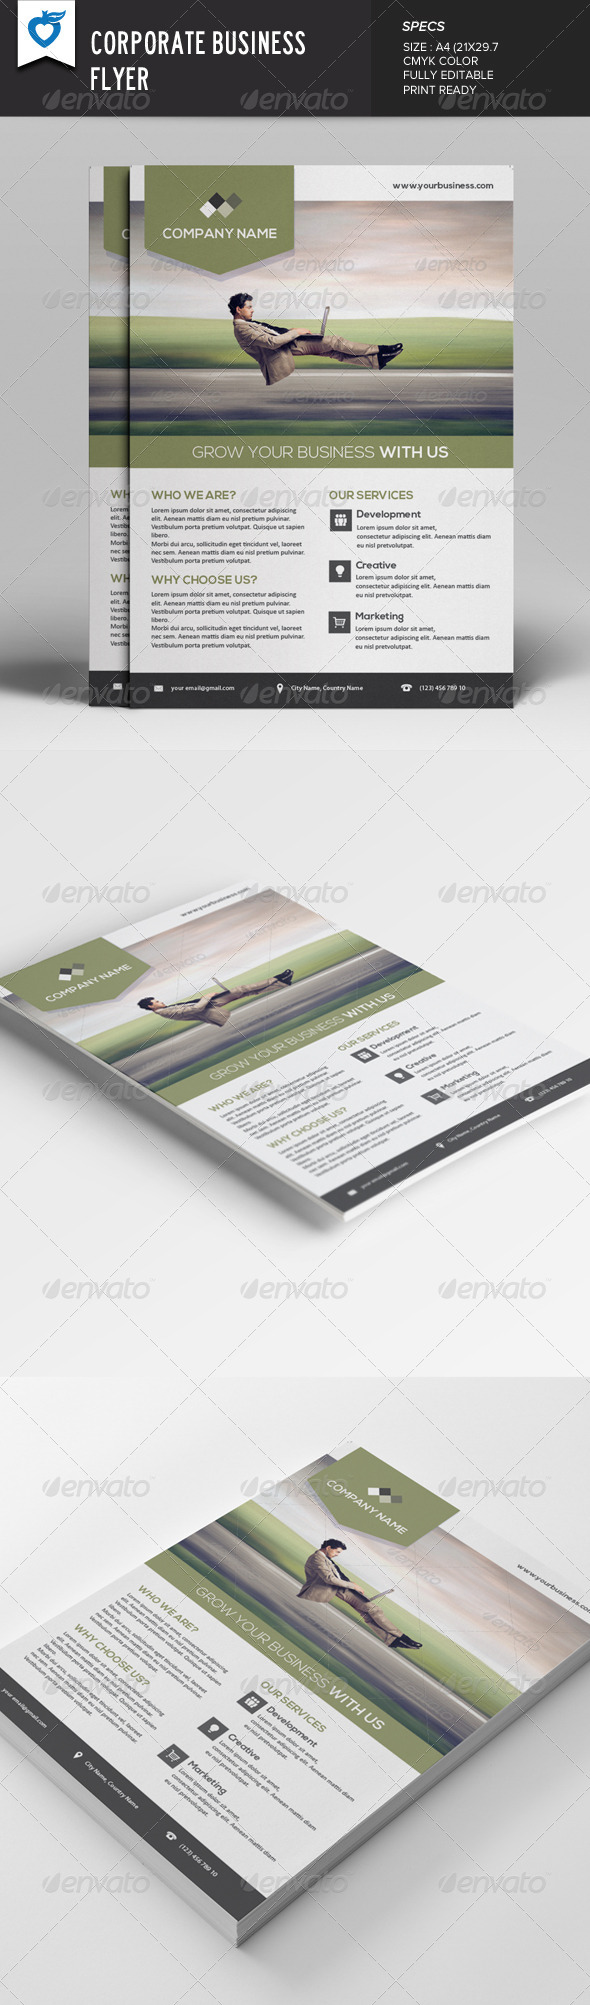 GraphicRiver Corporate Business Flyer v6 7912512